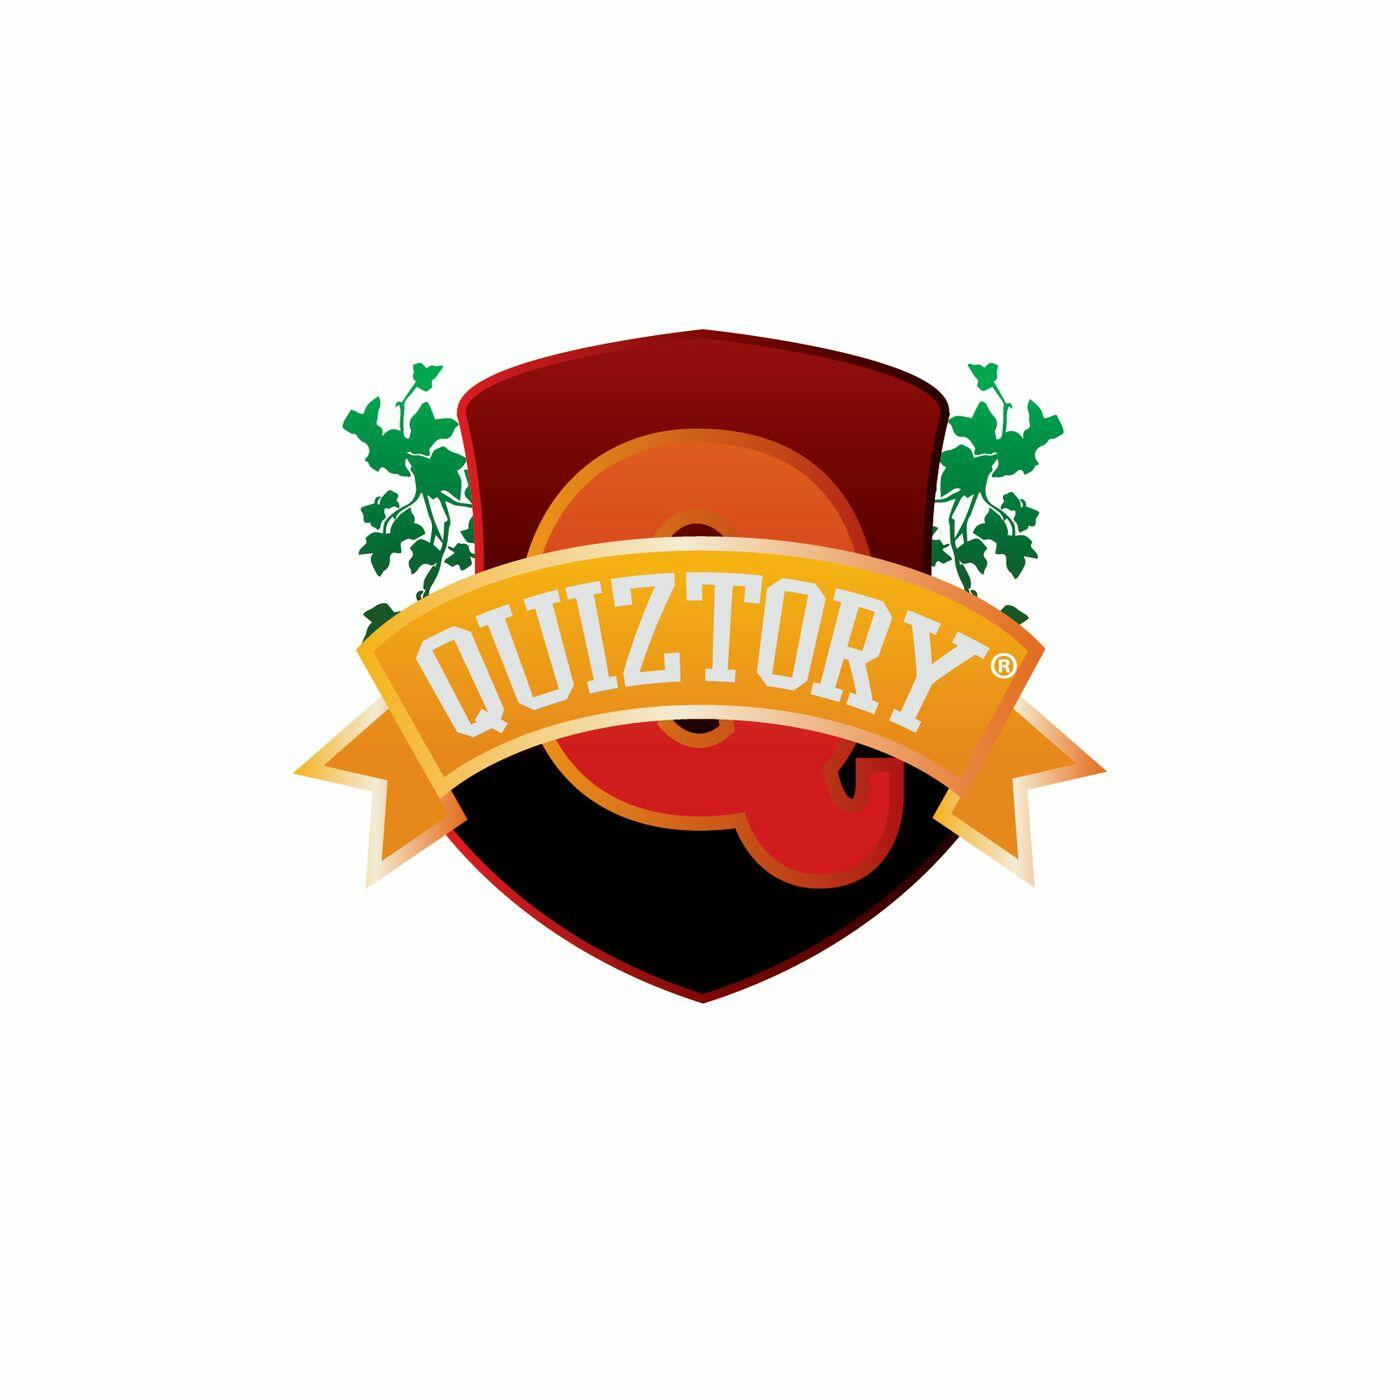 Listen to the This Day in Quiztory Episode - 09.18_U.S. Secretary of Housing and Urban Development Dr. Ben Carson on iHeartRadio | iHeartRadio